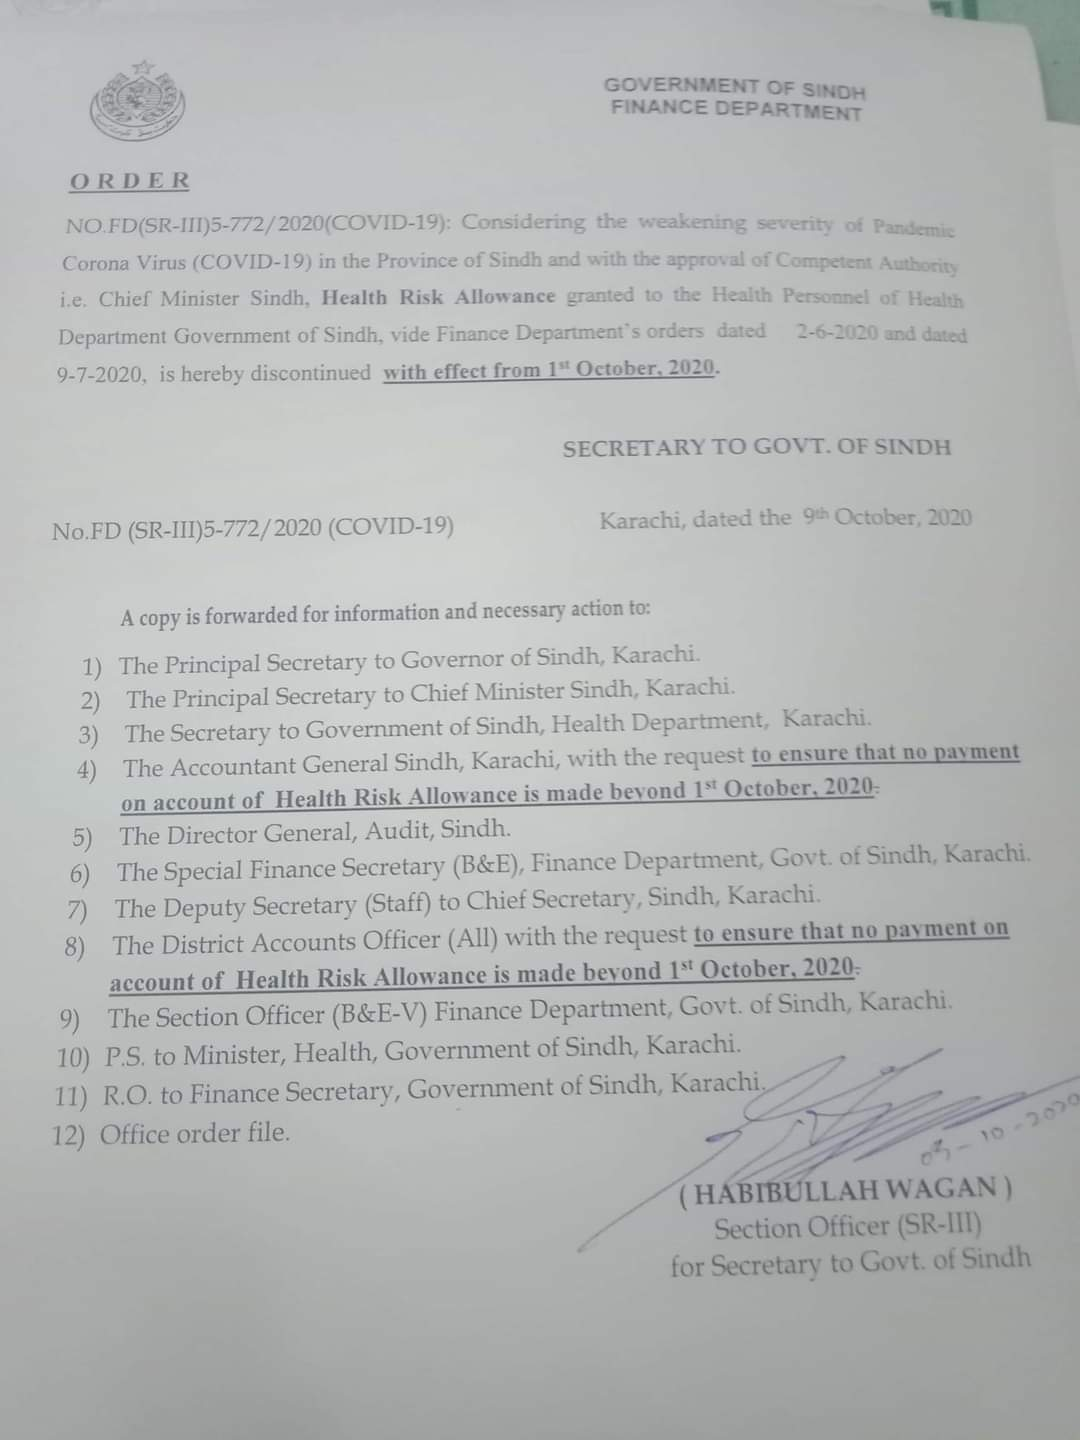 Order | Discontinuation of Health Risk Allowance granted to the Health Personnel of Health Department | Government of Sindh Finance Department | October 09, 2020 - allpaknotifications.com